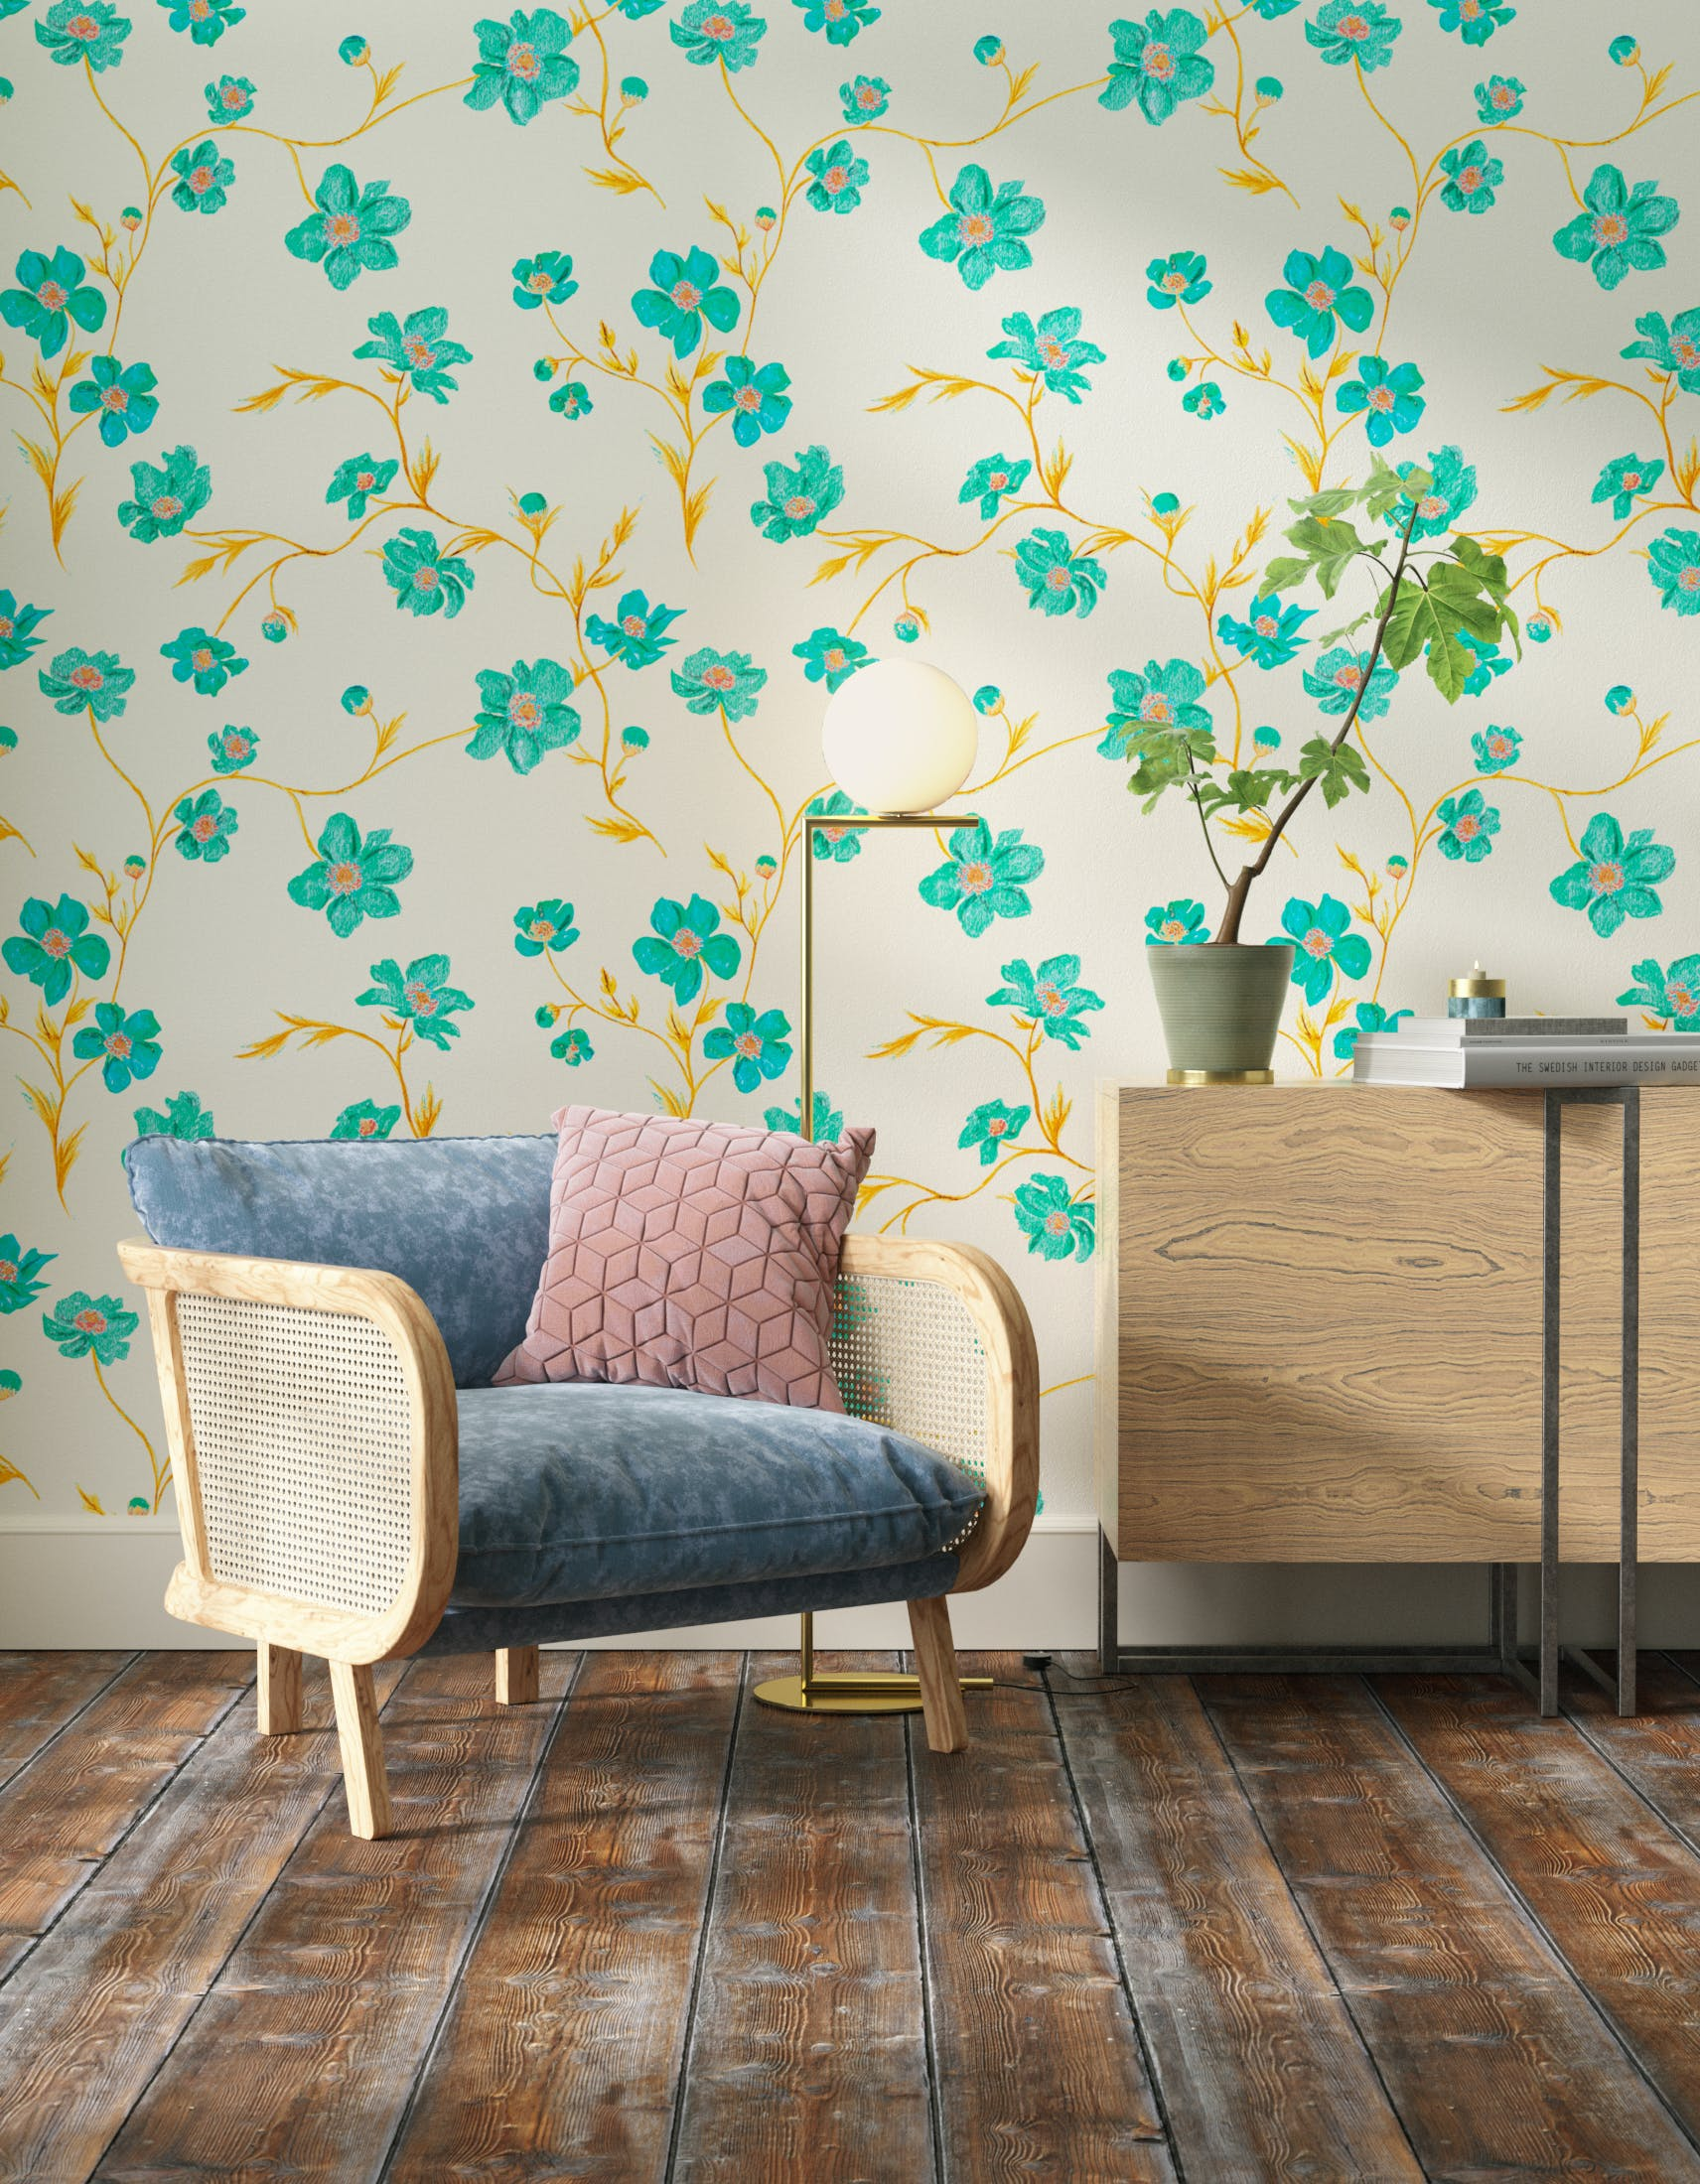 Living room decorated with Lick x Jenna Hewitt Anemone 01 turquoise floral wallpaper